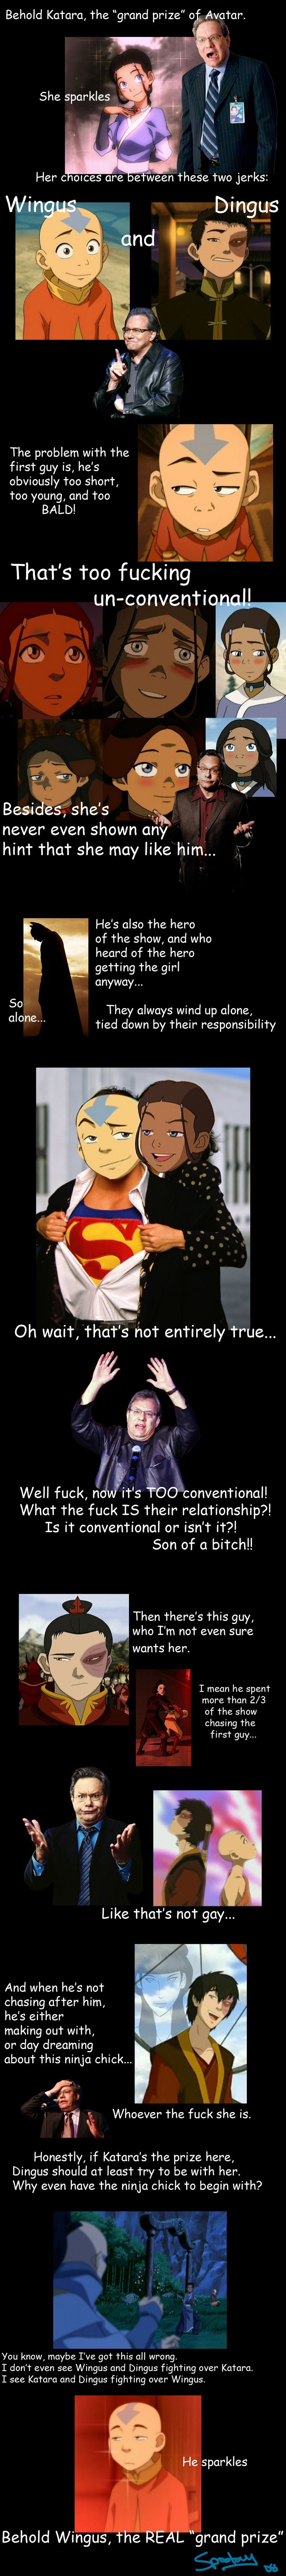 Hilarious... but still, this is a joke, katara and Aang have fangirled each other throughout the entire show. And yes, it is super obvious if you think of Katara as a real person as opposed to a super emotional anime girl.  http://pics.livejournal.com/spootyatm/pic/000084rs